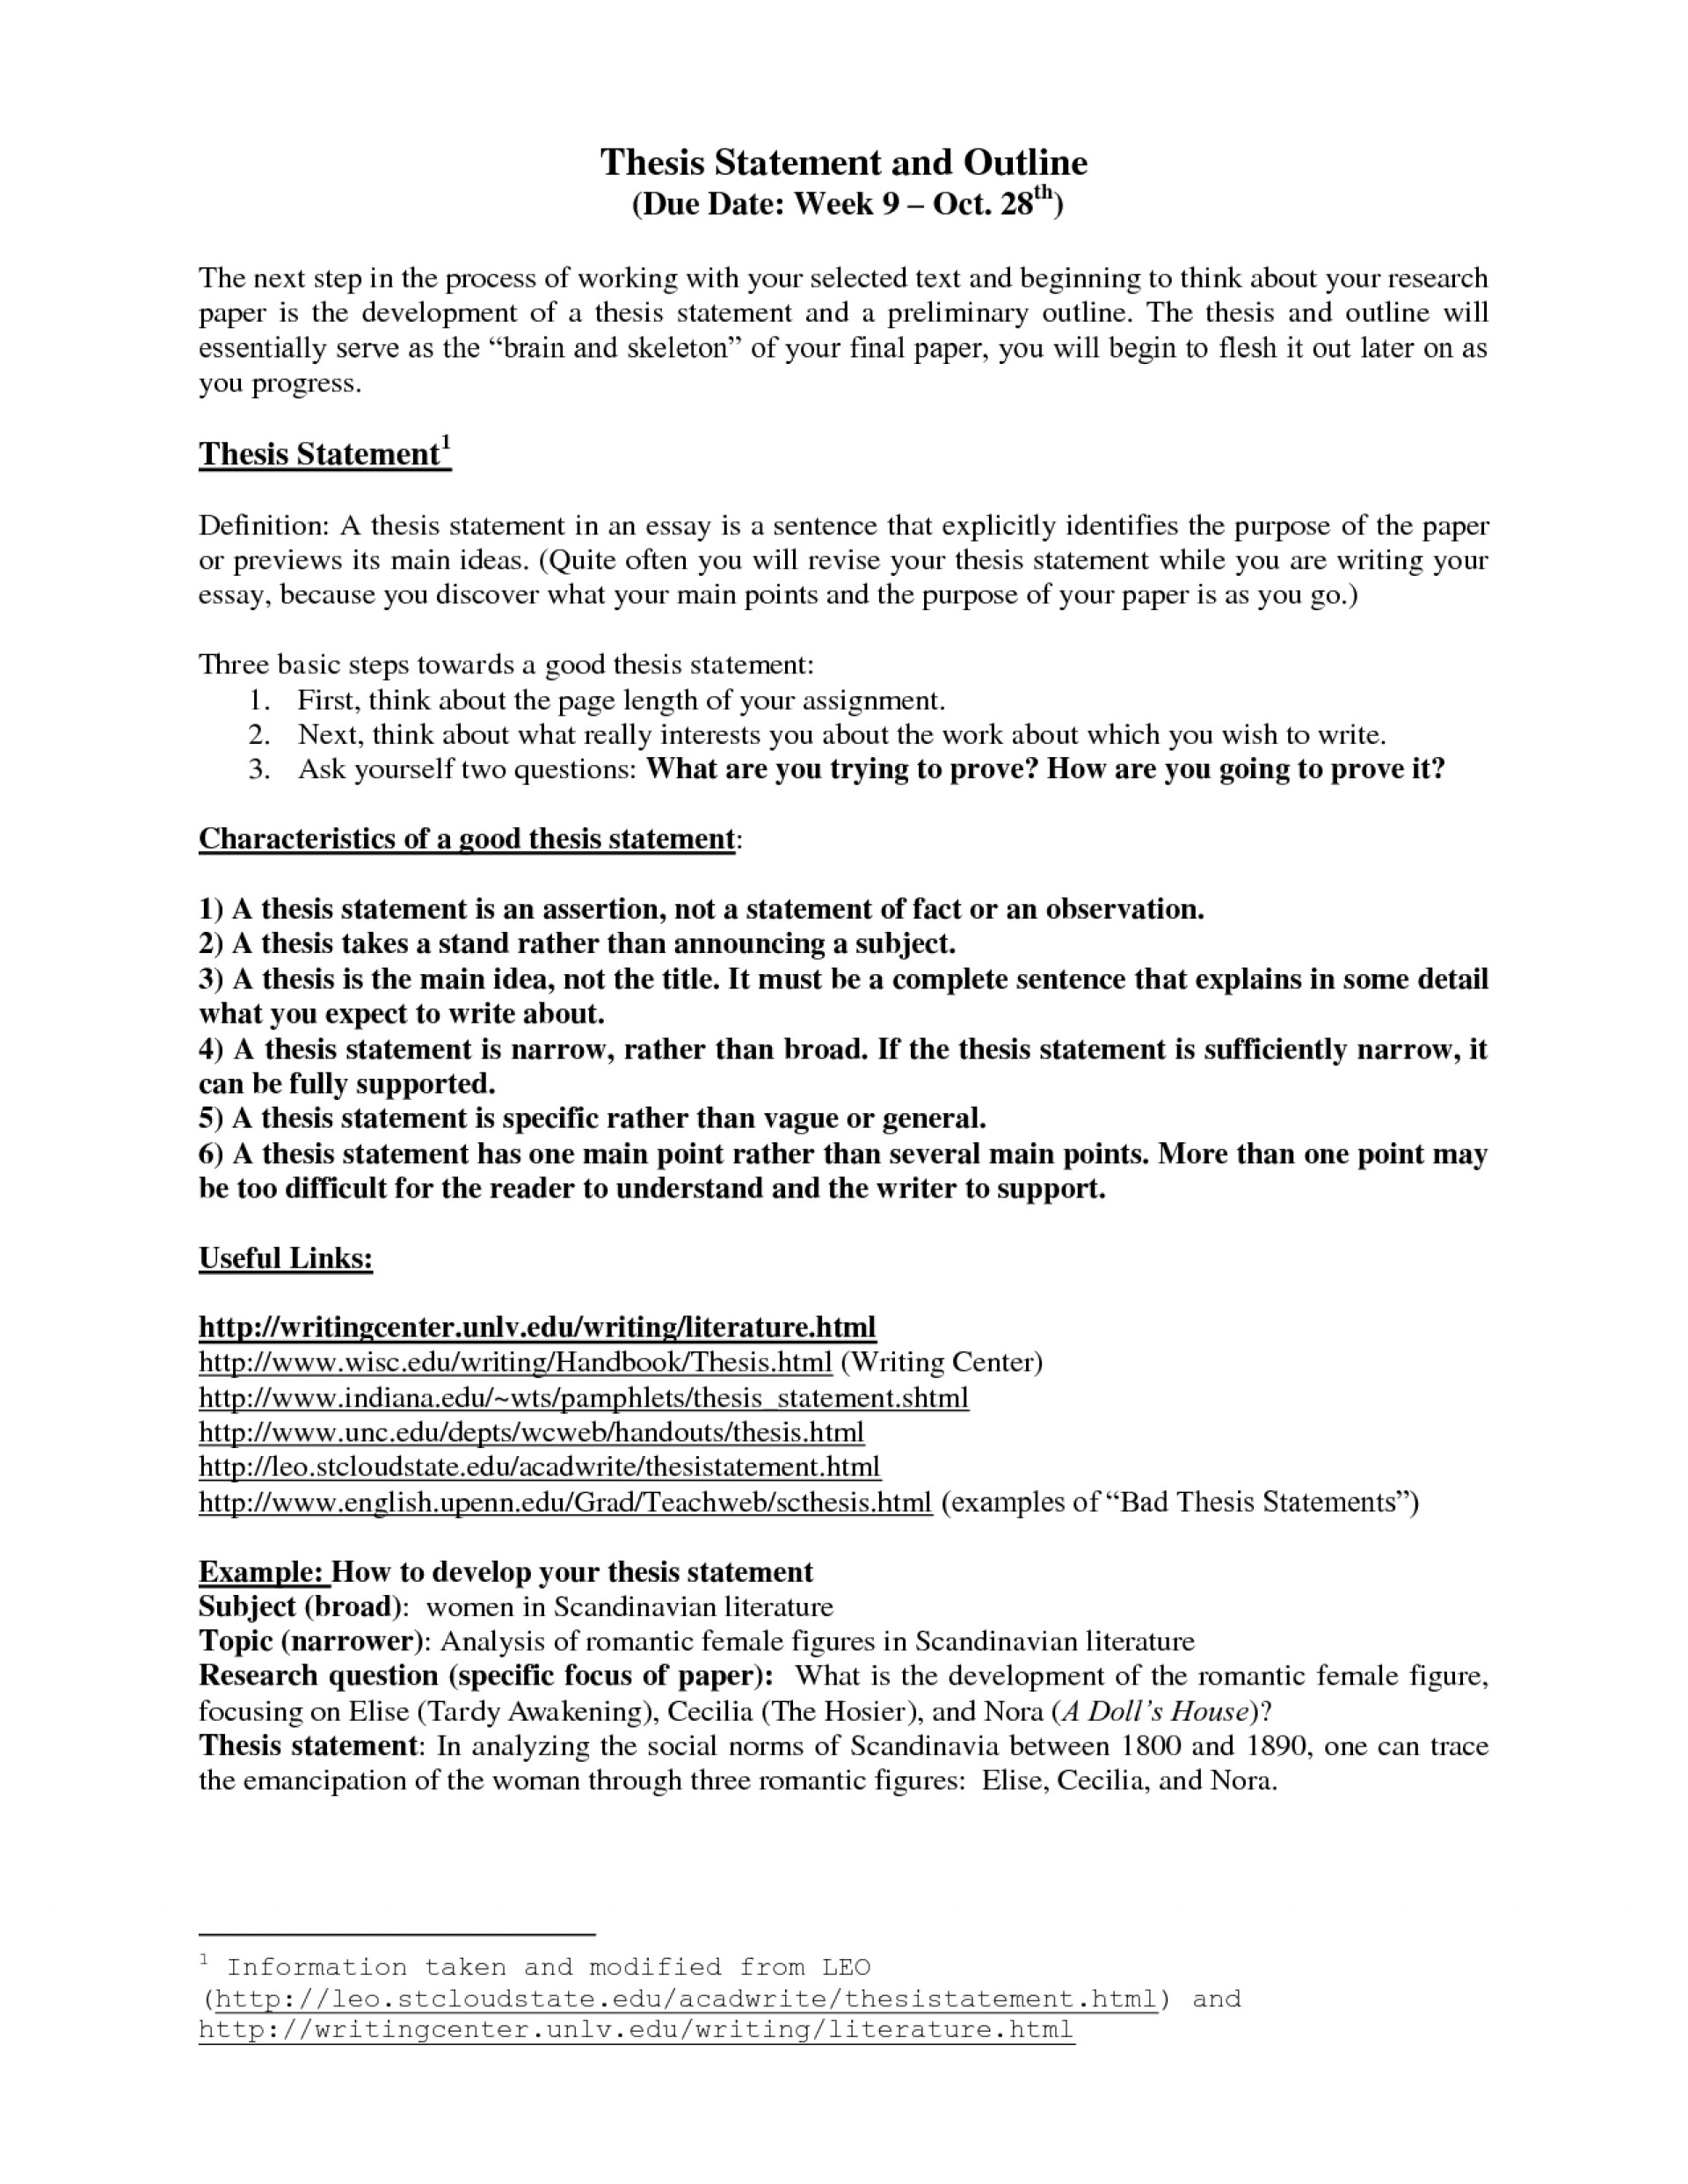 001 Thesis Statement And Outline Template Wx8nmdez Research Paper How To Write For Staggering A Examples 1920